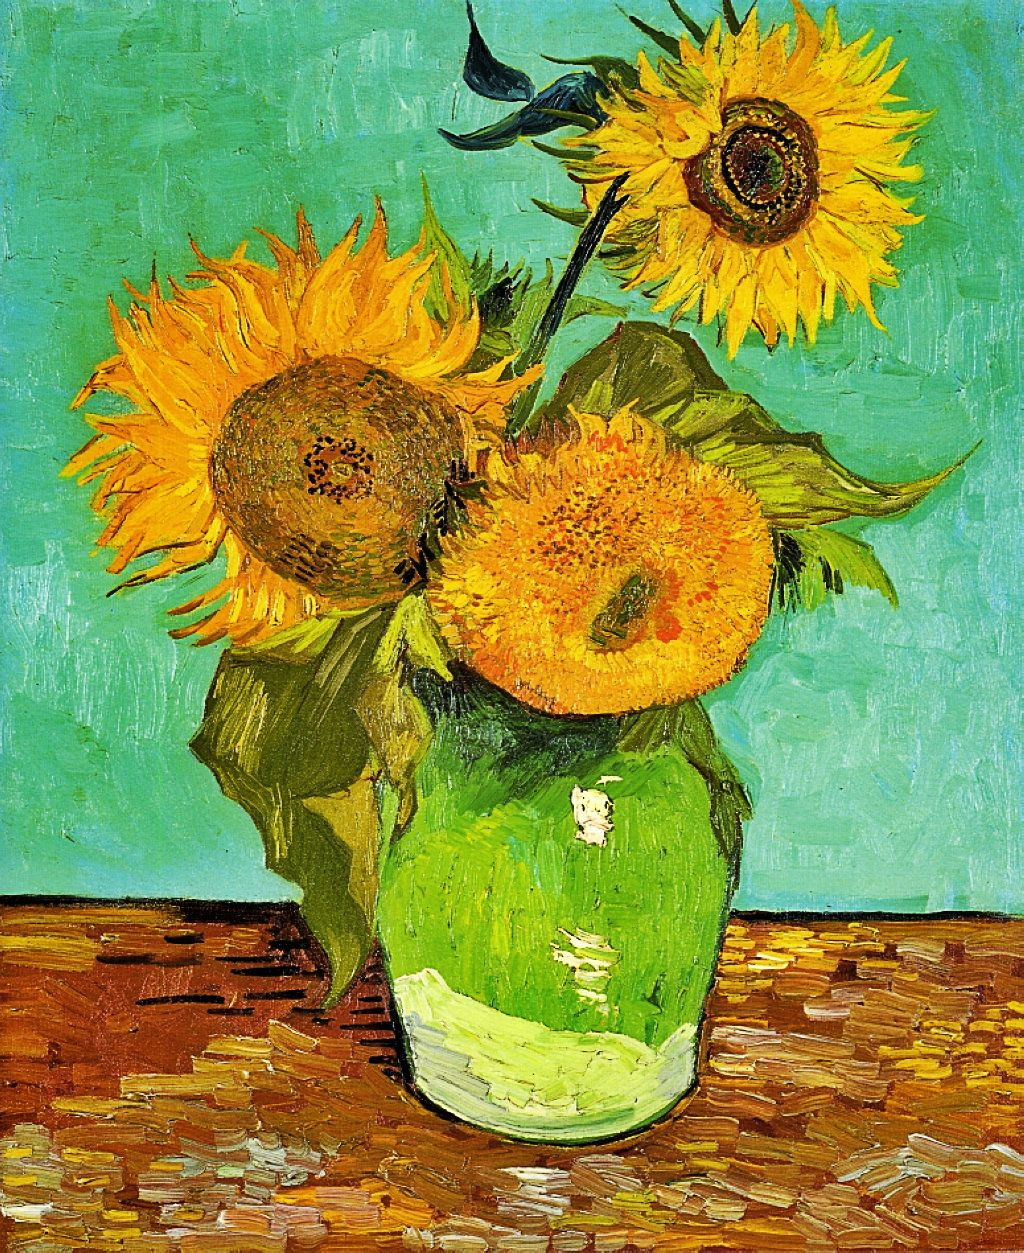 Vincent Van Gogh Paintings Sunflowers Sunflowers Vincent Van Gogh 1888 Vincent Van Gogh